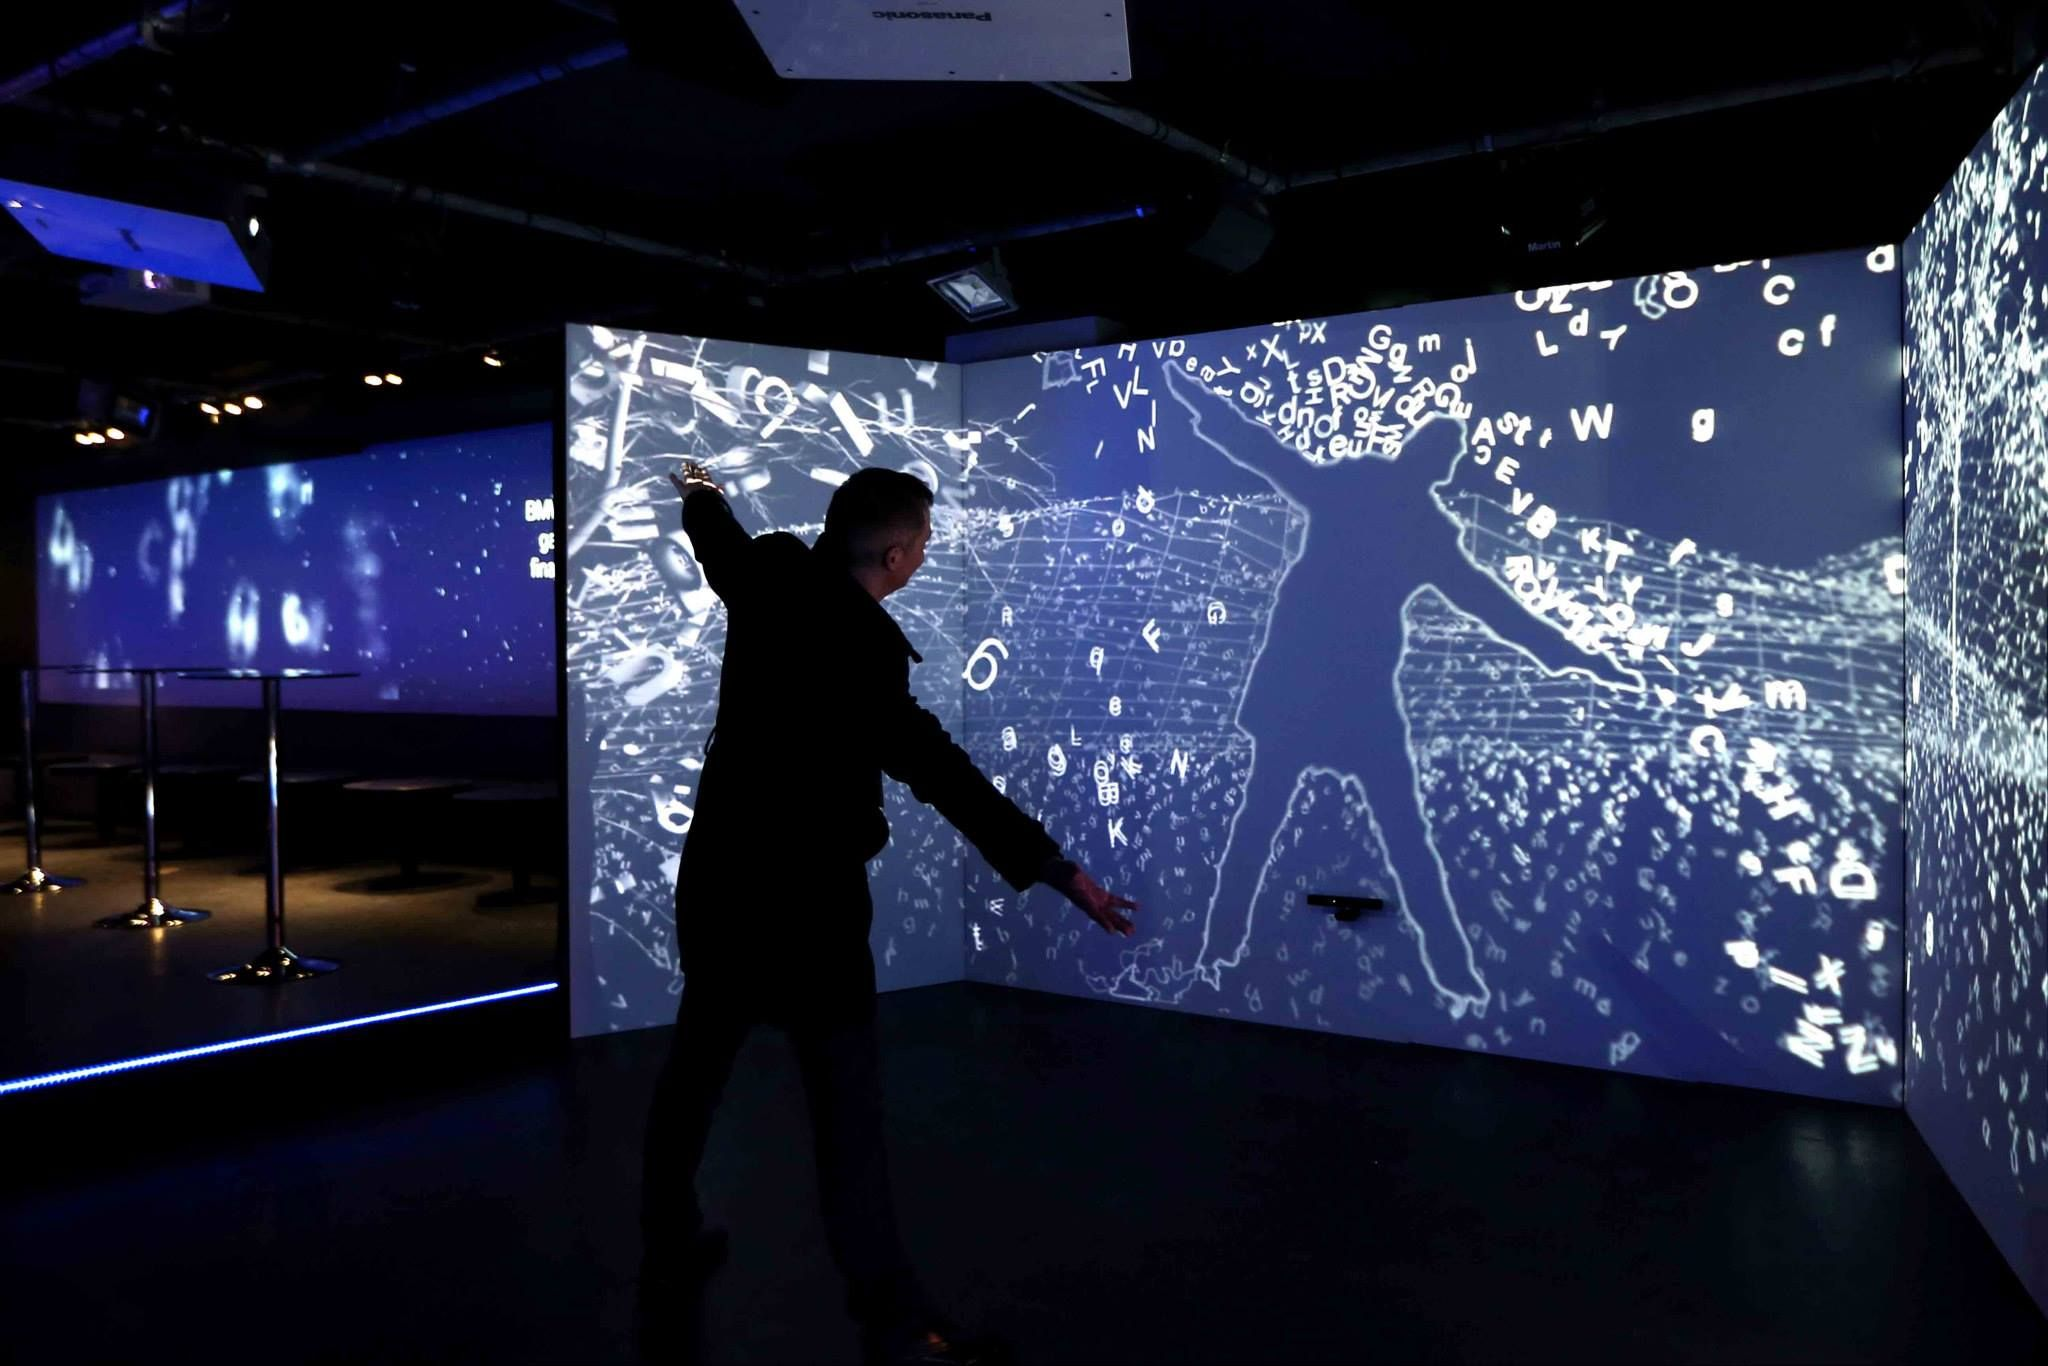 Exhibition Booth Installation : Image result for interactive digital screen artwork